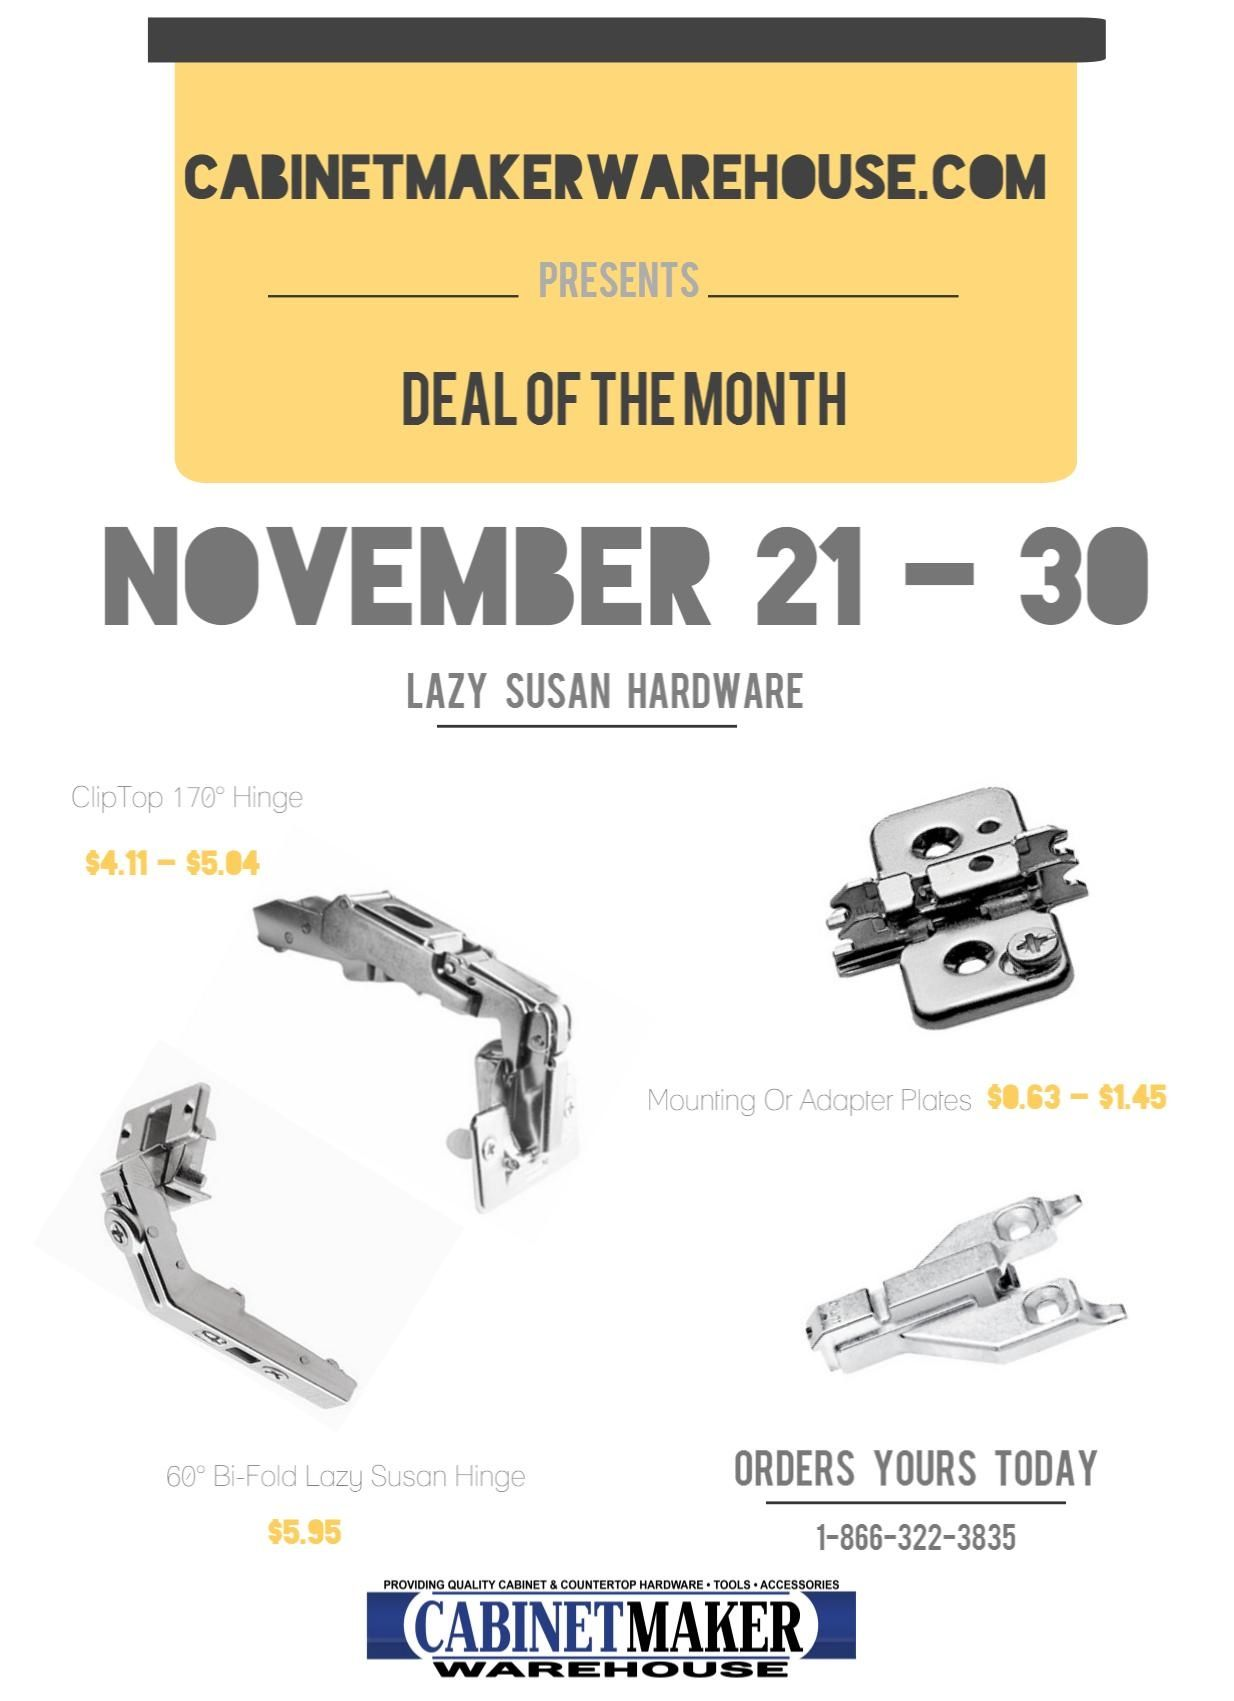 Find Great Deals On Lazy Susan Hardware And Hinges